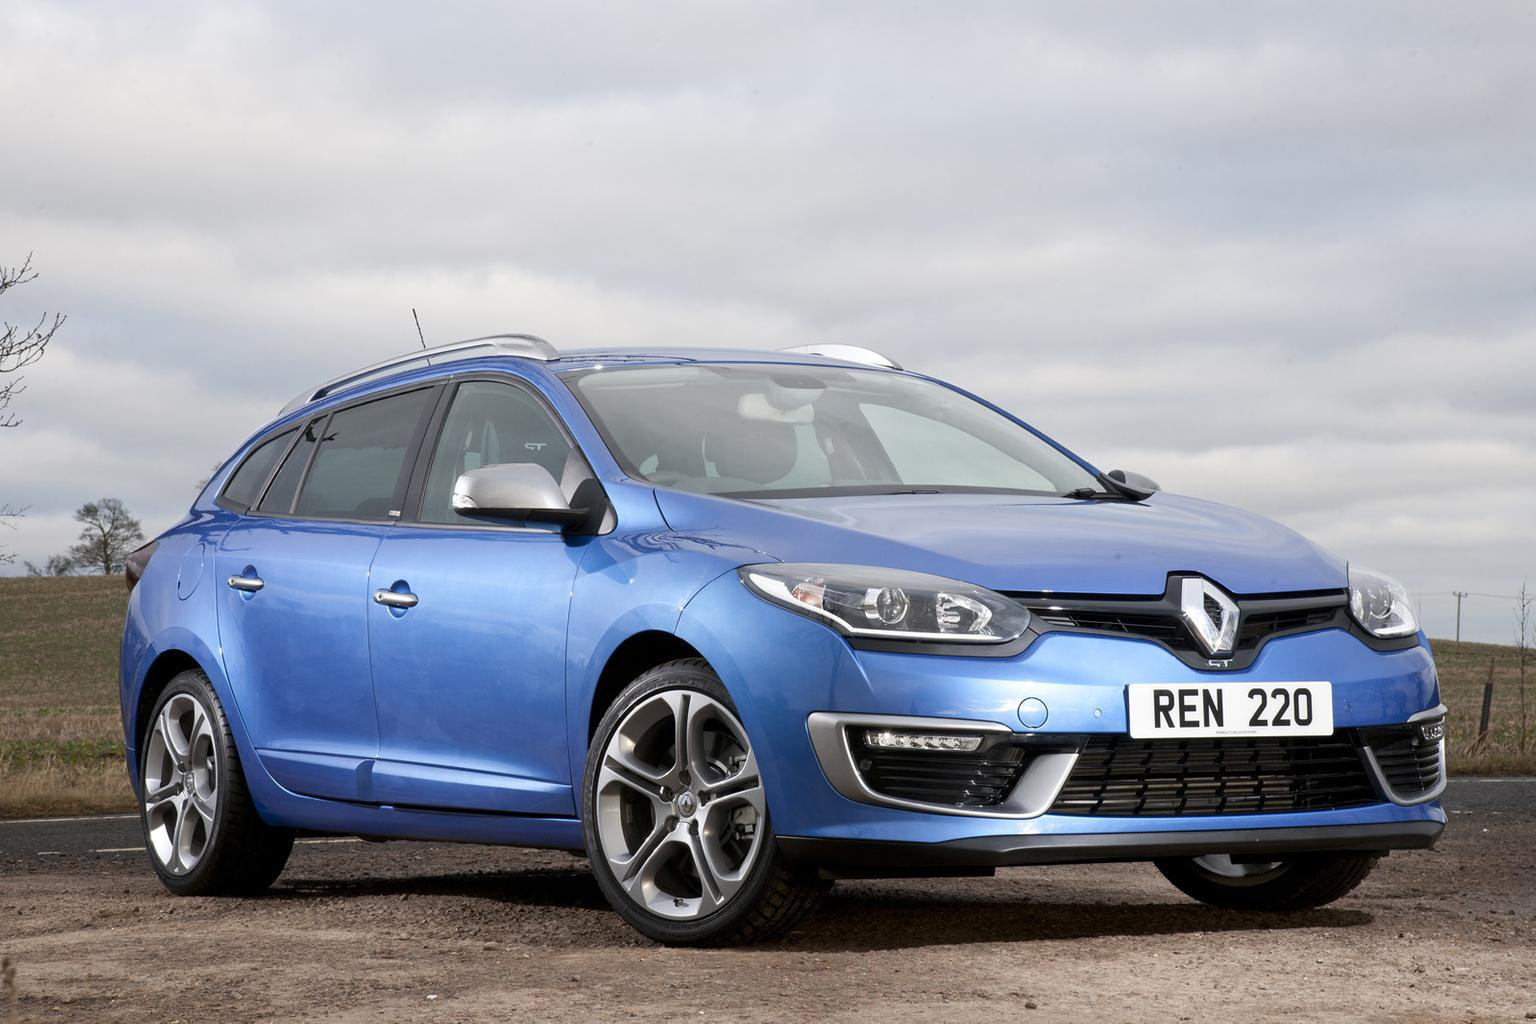 Renault Megane GT 220 - prices and specs